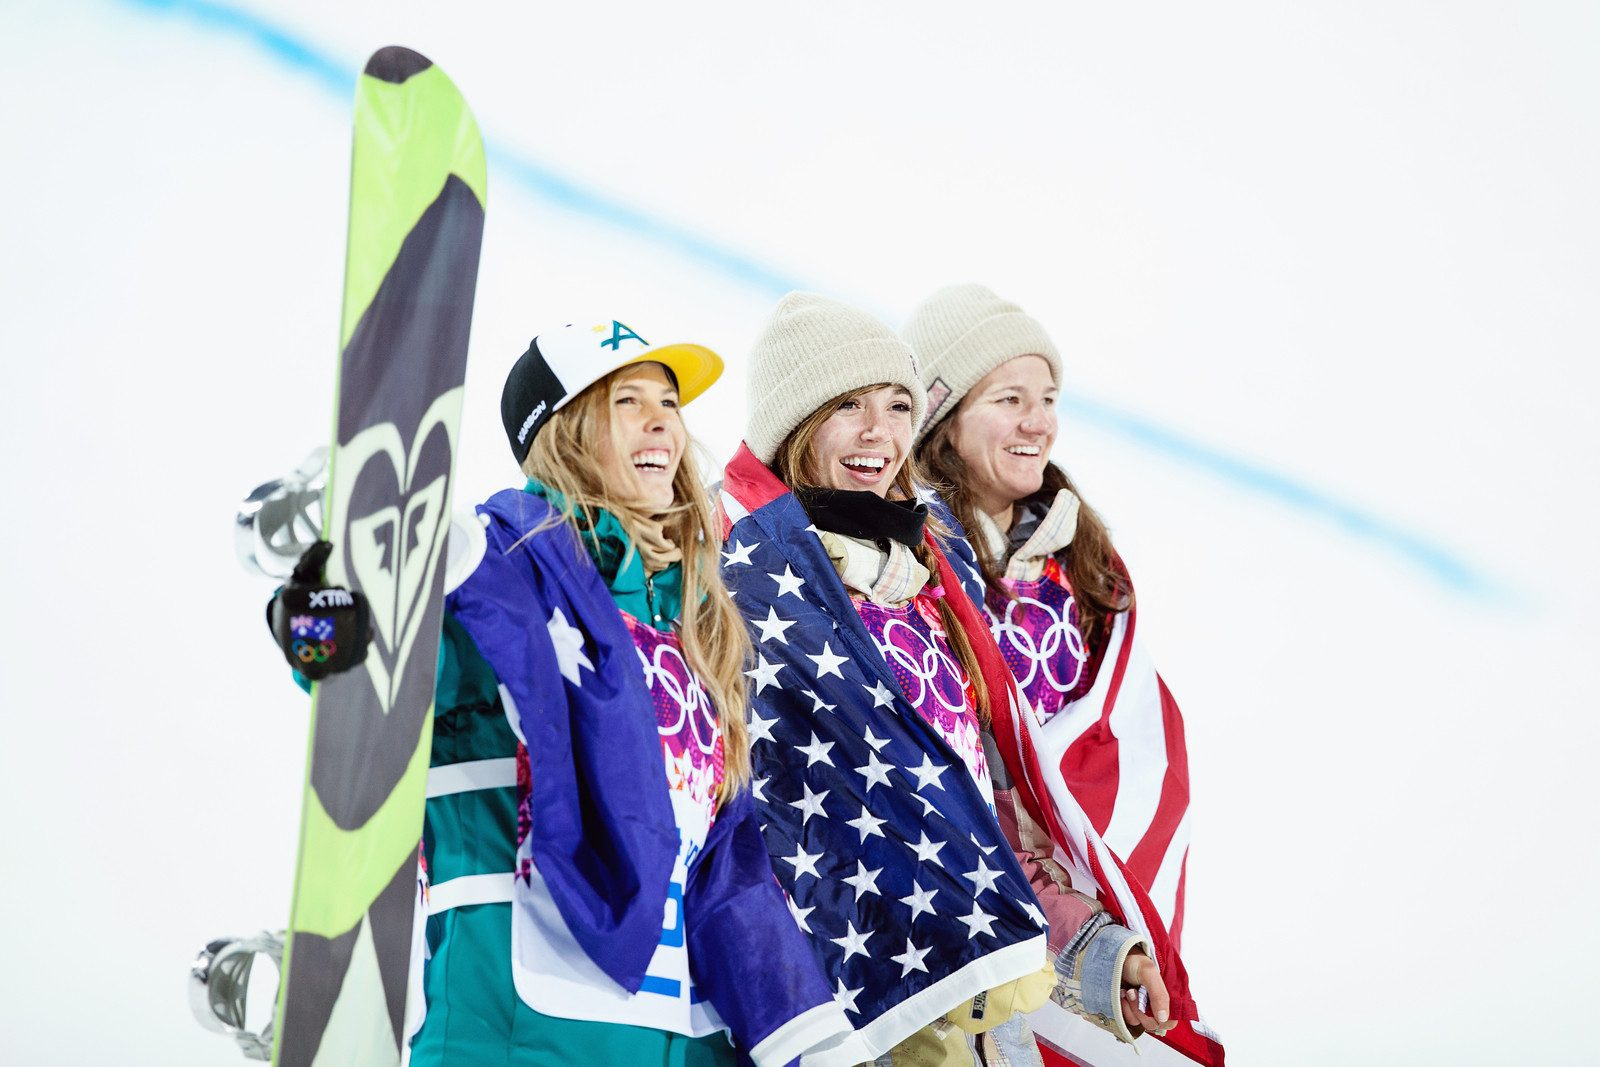 2014 Olympic Winter Games - Sochi, Russia. Women's halfpipe snowboarding Photo: Sarah Brunson/U.S. Snowboarding